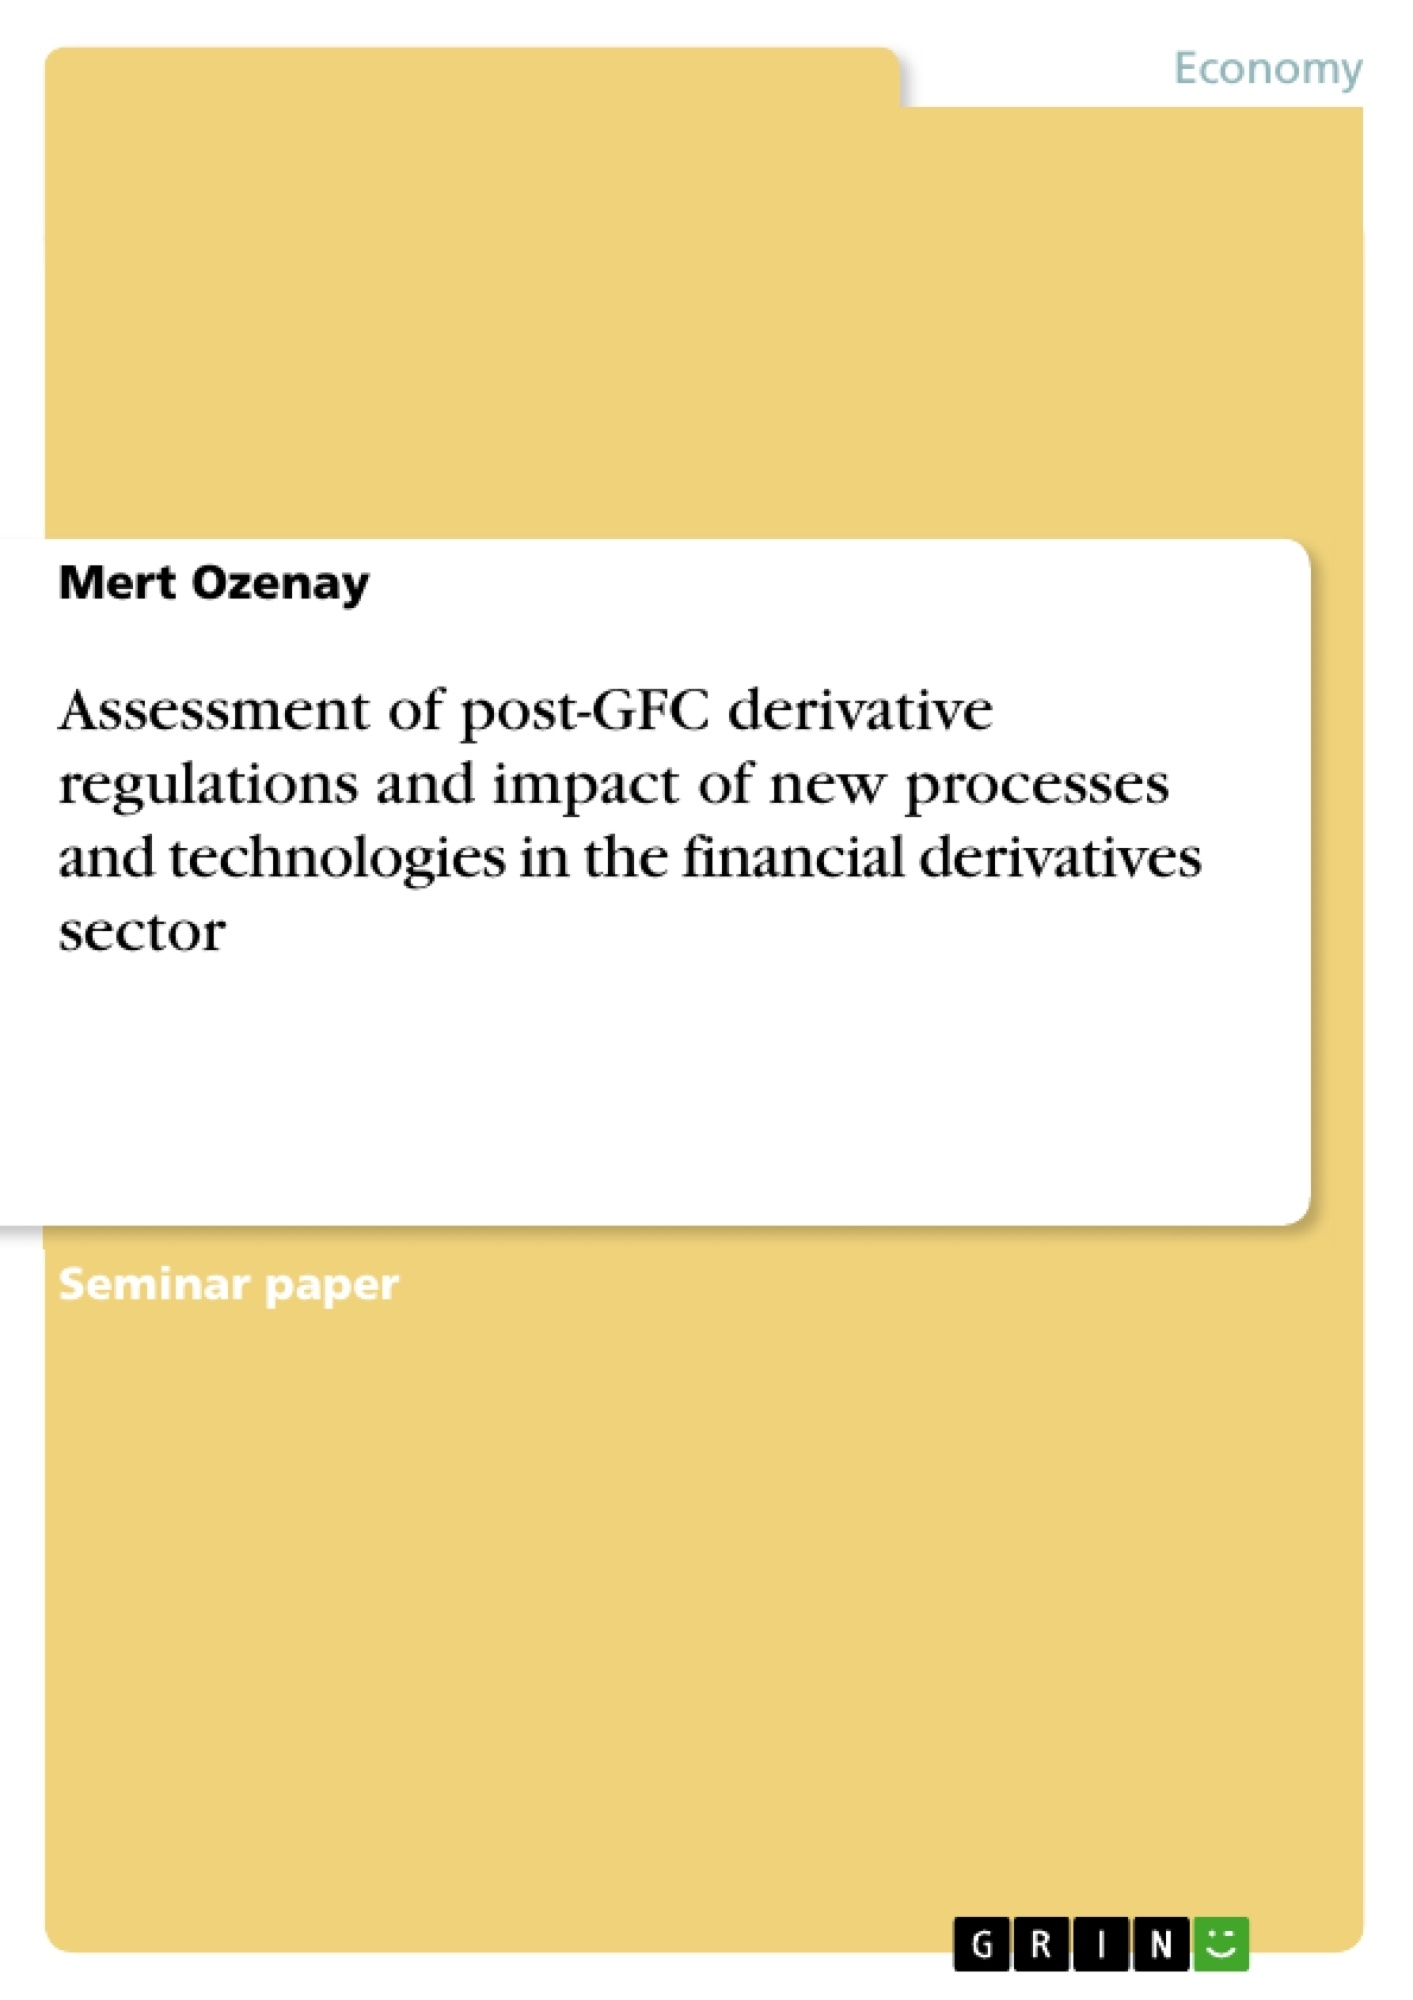 Title: Assessment of post-GFC derivative regulations and impact of new processes and technologies in the financial derivatives sector